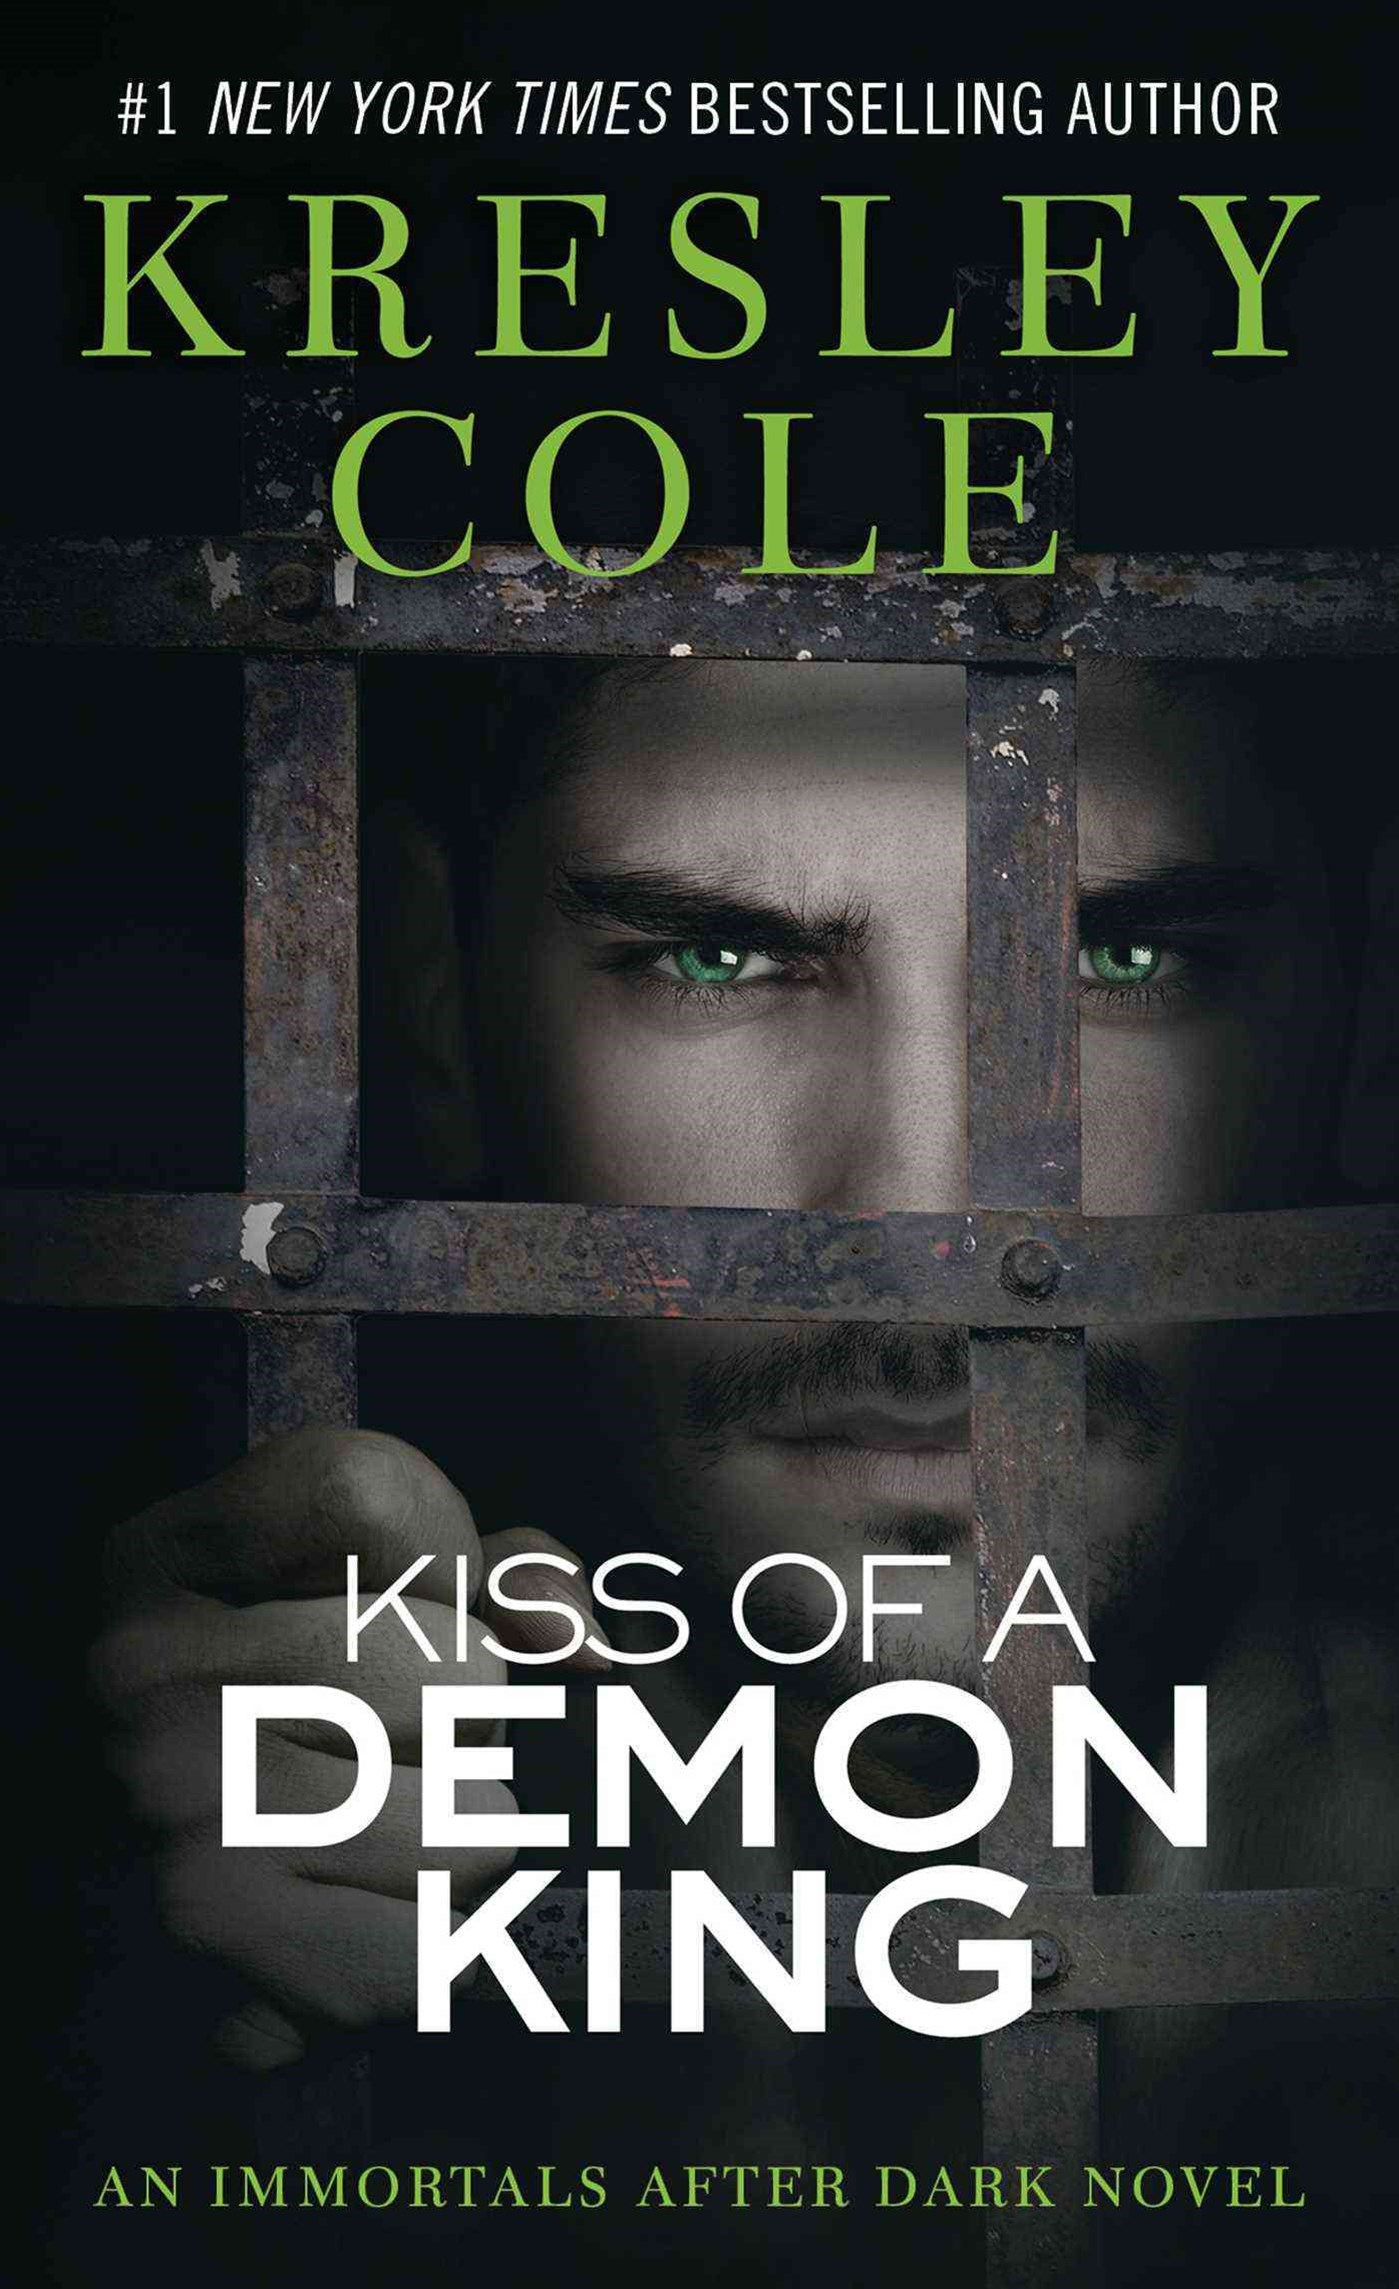 Immortals After Dark #6: Kiss of a Demon King